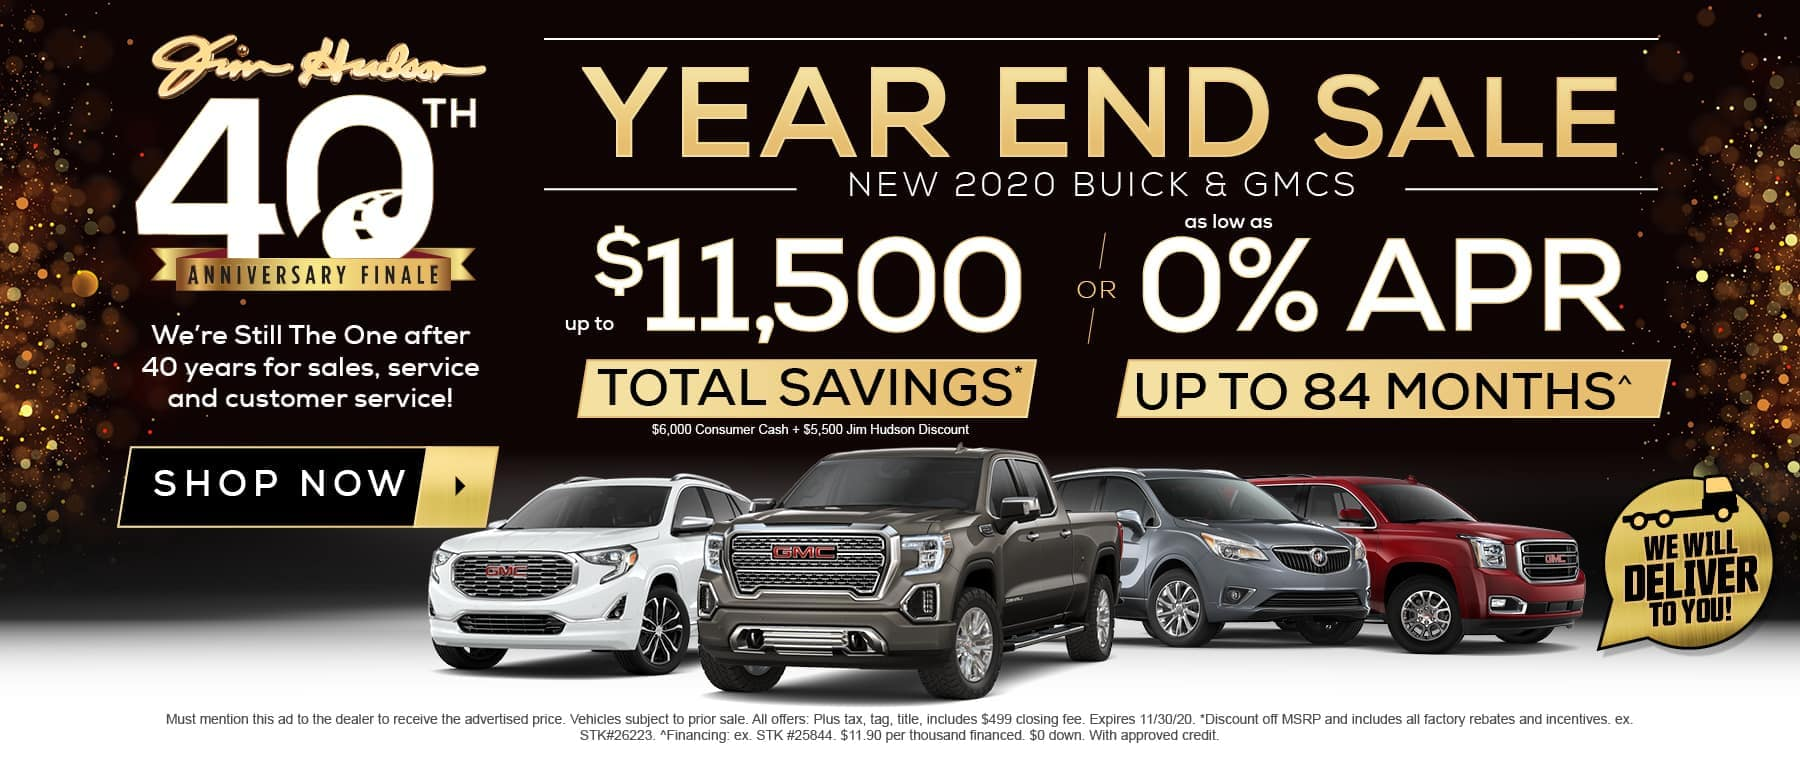 JHS - Year End Sale